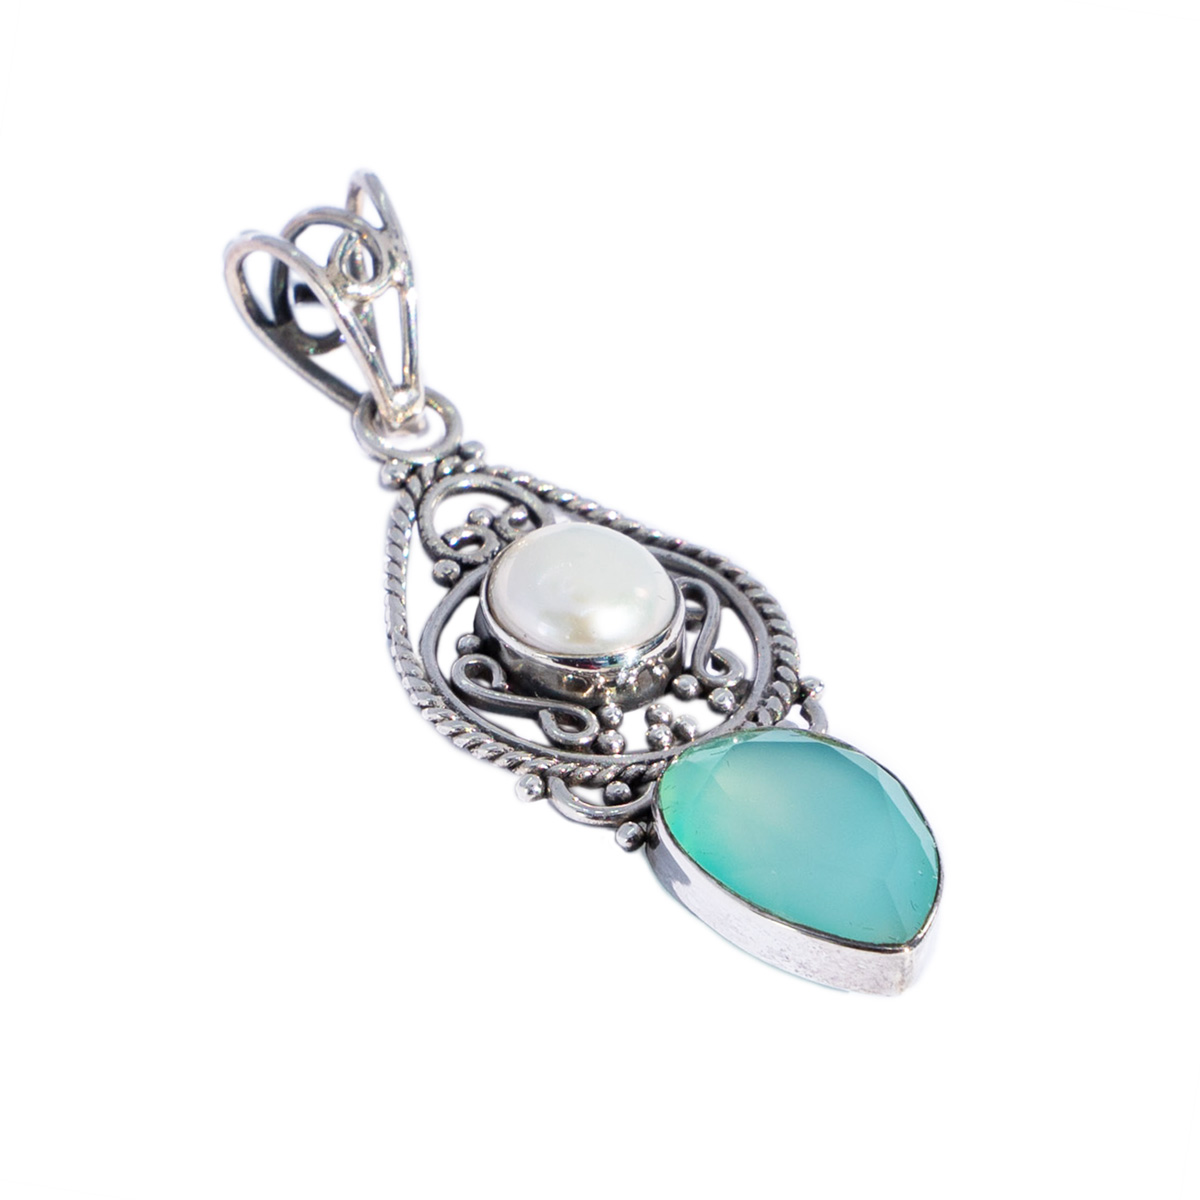 Sri Avinash Infused™ 7.8cts Aqua Chalcedony & Pearl Pendant in Sterling Silver - Divine Spirit & Protection Infusion